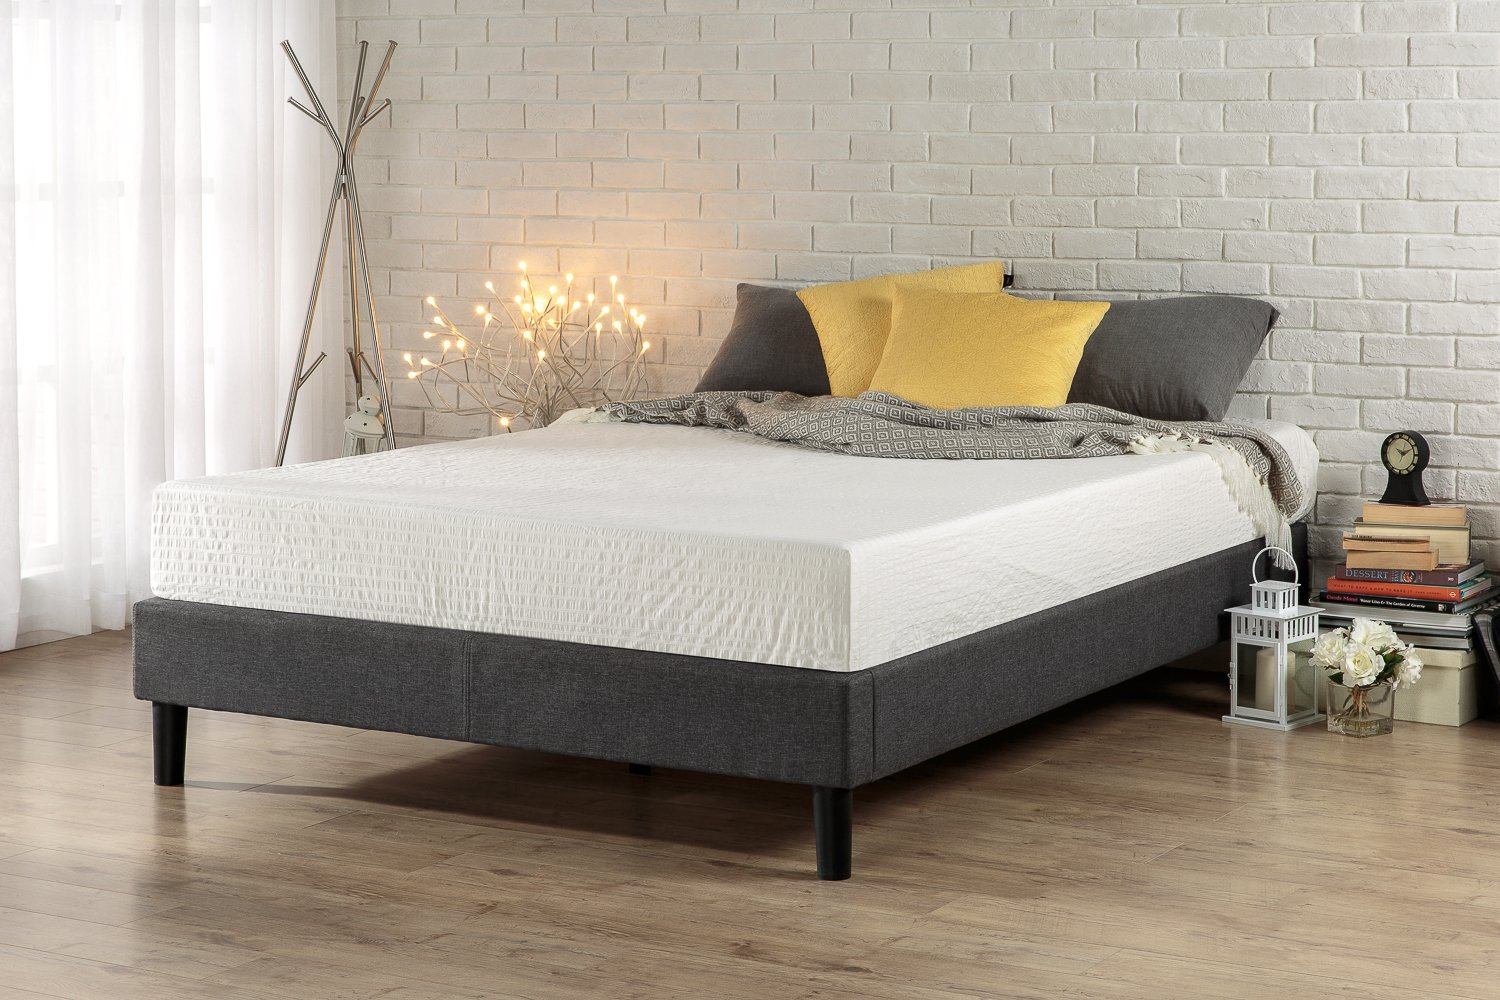 Review Zinus Essential Upholstered Bed Frame Cozy Home 101